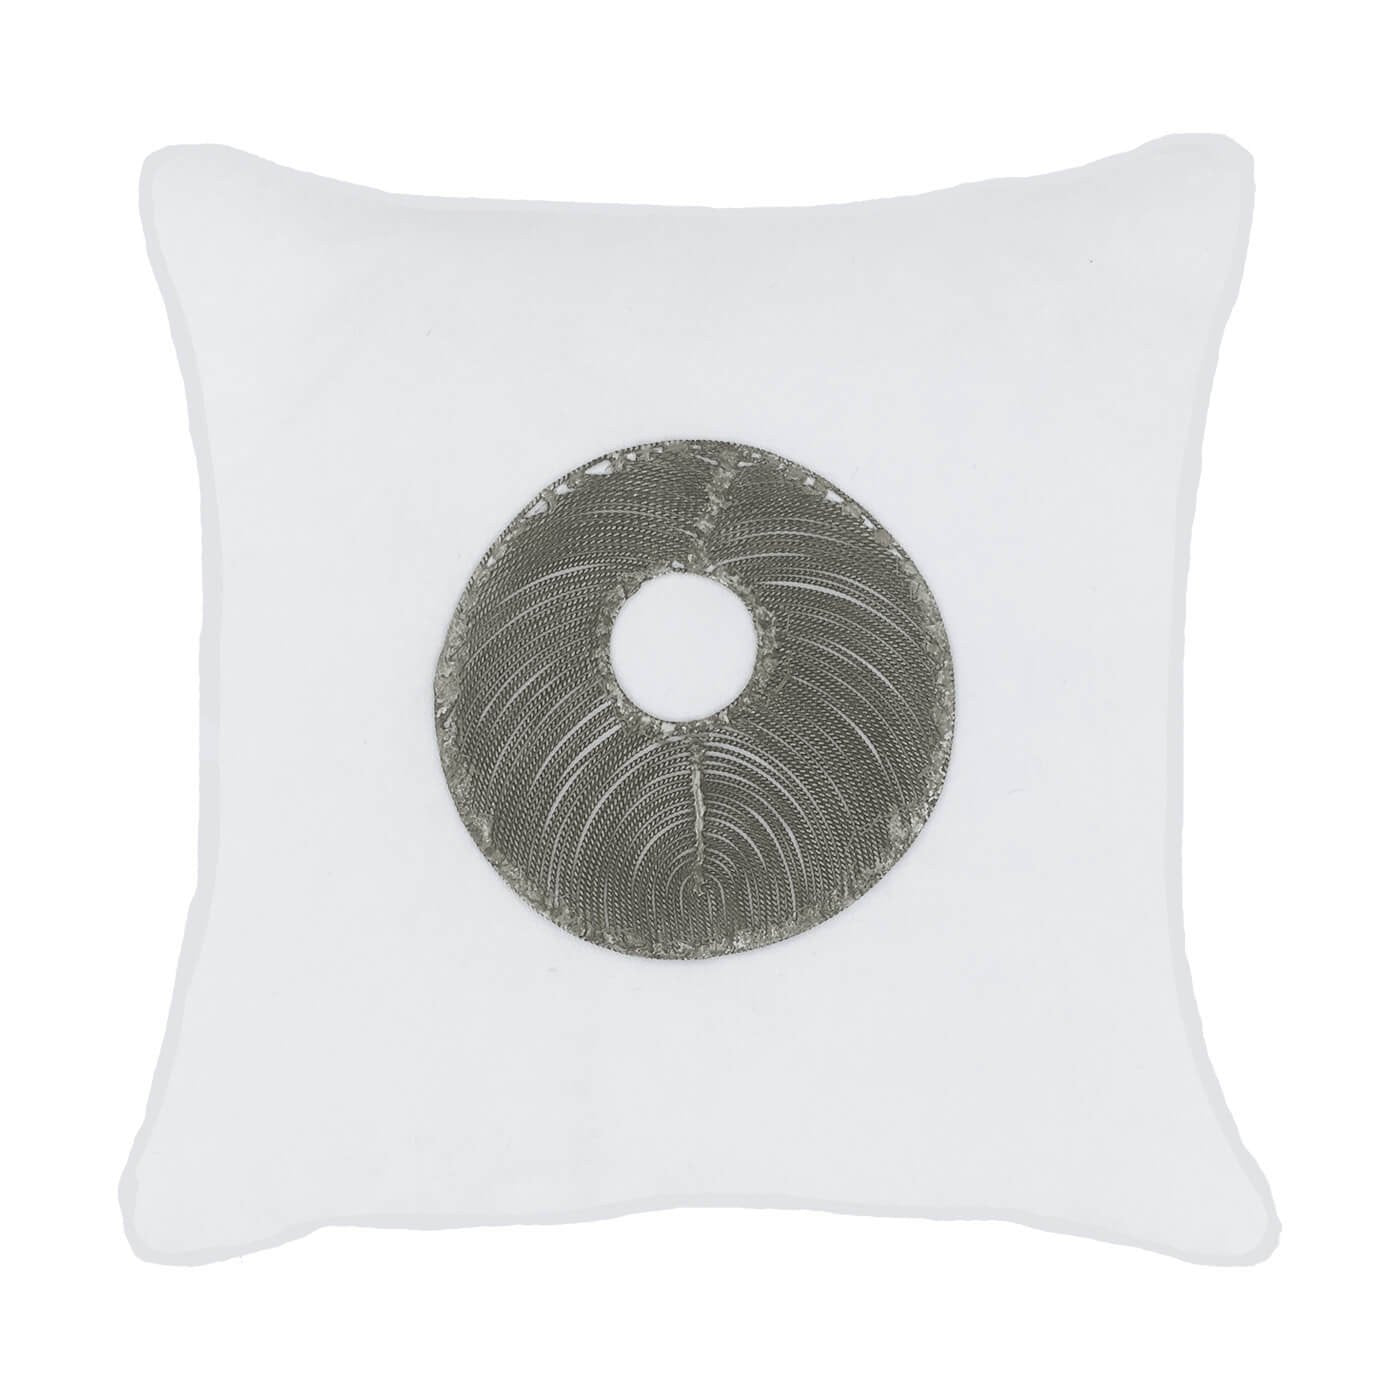 Bandhini Homewear Design Medium Cushion Wind / Exotic Light / 20 x 20 Disc Silver White Medium Cushion 50x50cm